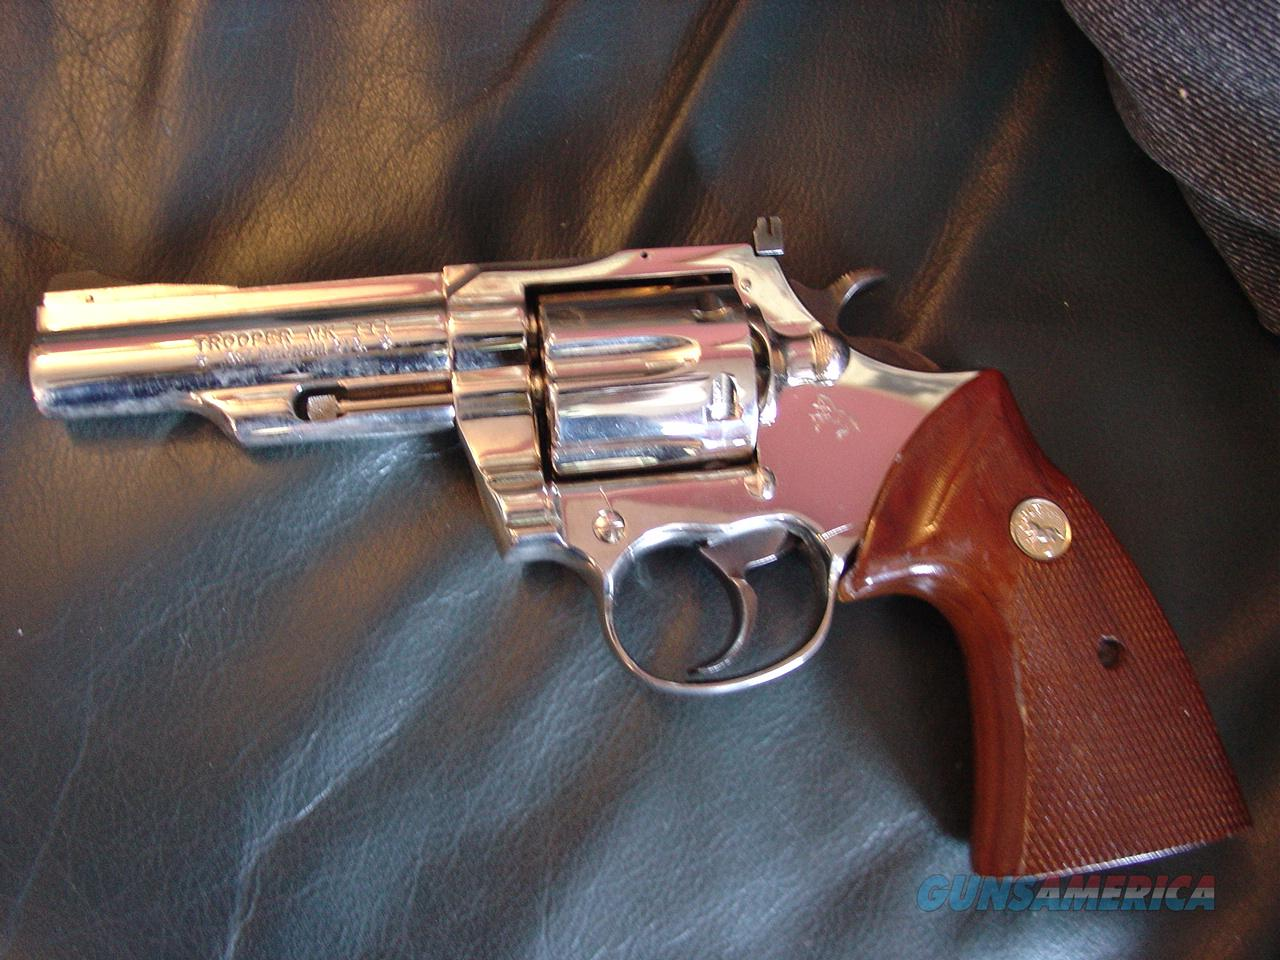 "Colt Trooper MK III,bright high polished nickel,4"",357magnum,Safariland leather holster,possibly around 1969,a real showpiece,wood grips,as nice as they get.  Guns > Pistols > Colt Double Action Revolvers- Modern"